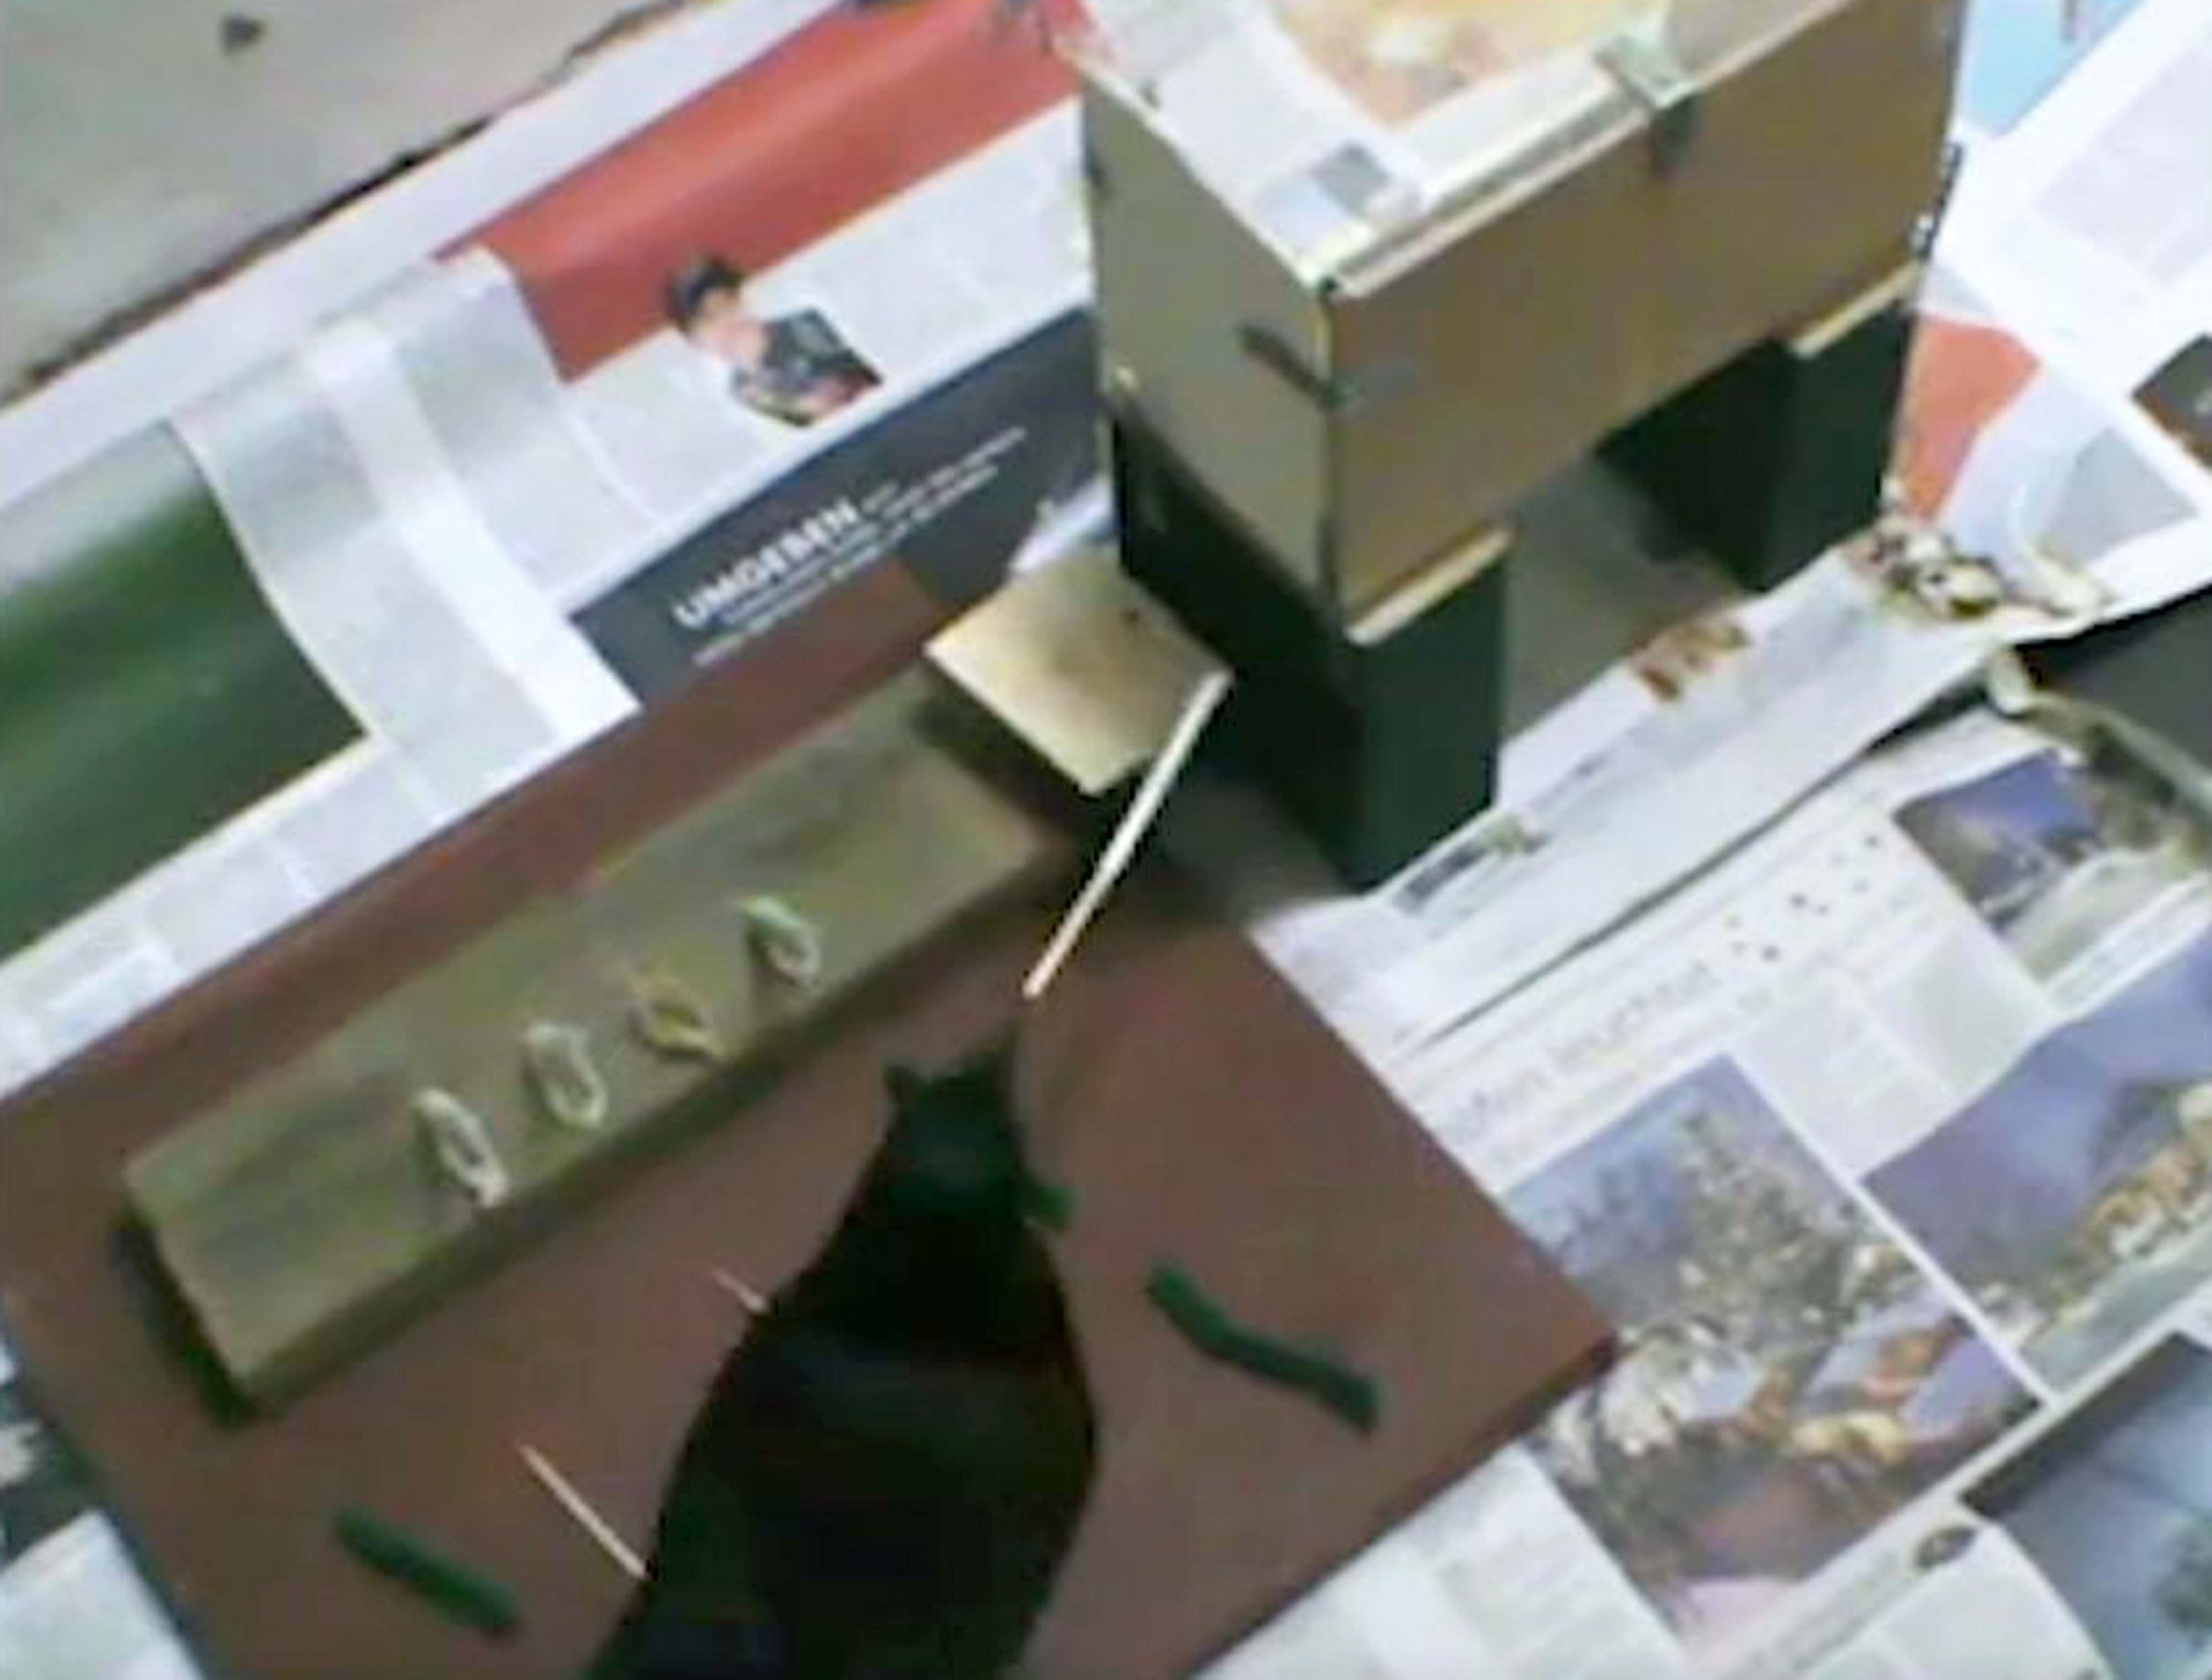 """Undated handout grab taken from video issued by Oxford University of a Caledonian crow slotting together rod pieces to create a tool long enough to extract a food reward, a feat previously only seen in humans and great apes. PRESS ASSOCIATION Photo. Issue date: Wednesday October 24, 2018. Researcher Dr Auguste von Bayern, from Oxford University and the Max-Planck Institute for Ornithology in Germany, said: """"The finding is remarkable because the crows received no assistance or training in making these combinations, they figured it out by themselves"""". See PA story SCIENCE Crows. Photo credit should read: Oxford University/PA Wire NOTE TO EDITORS: This handout photo may only be used in for editorial reporting purposes for the contemporaneous illustration of events, things or the people in the image or facts mentioned in the caption. Reuse of the picture may require further permission from the copyright holder."""